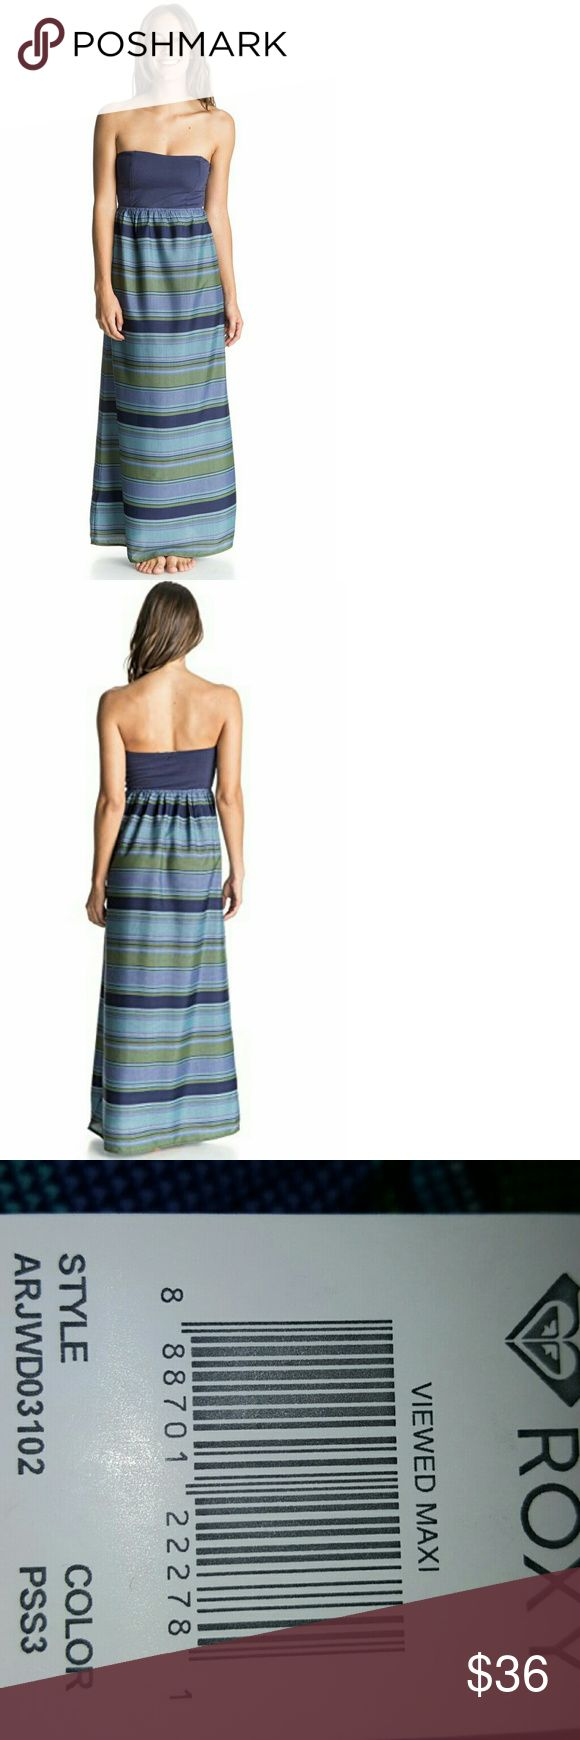 🆕Roxy Womens Viewed Maxi Strapless Dress The nuts and bolts      Woven tube maxi-dress     Mixed prints on bodice & skirt     Bicolor design     Strapless tube bodice     Maxi-length 100% Polyester Roxy Dresses Maxi